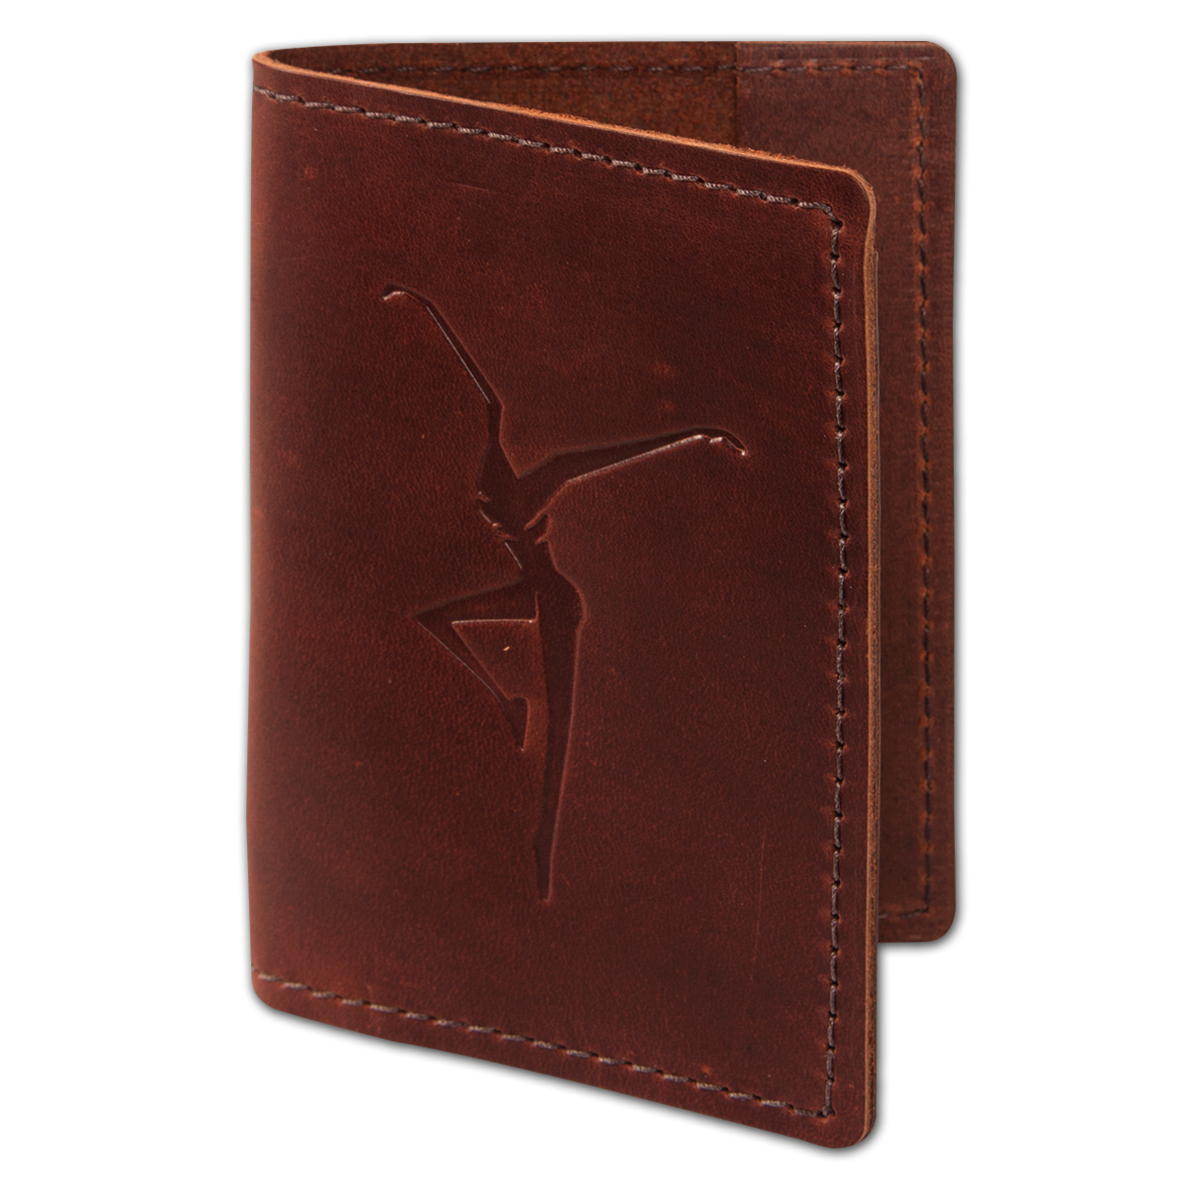 DMB Leather Passport Cover